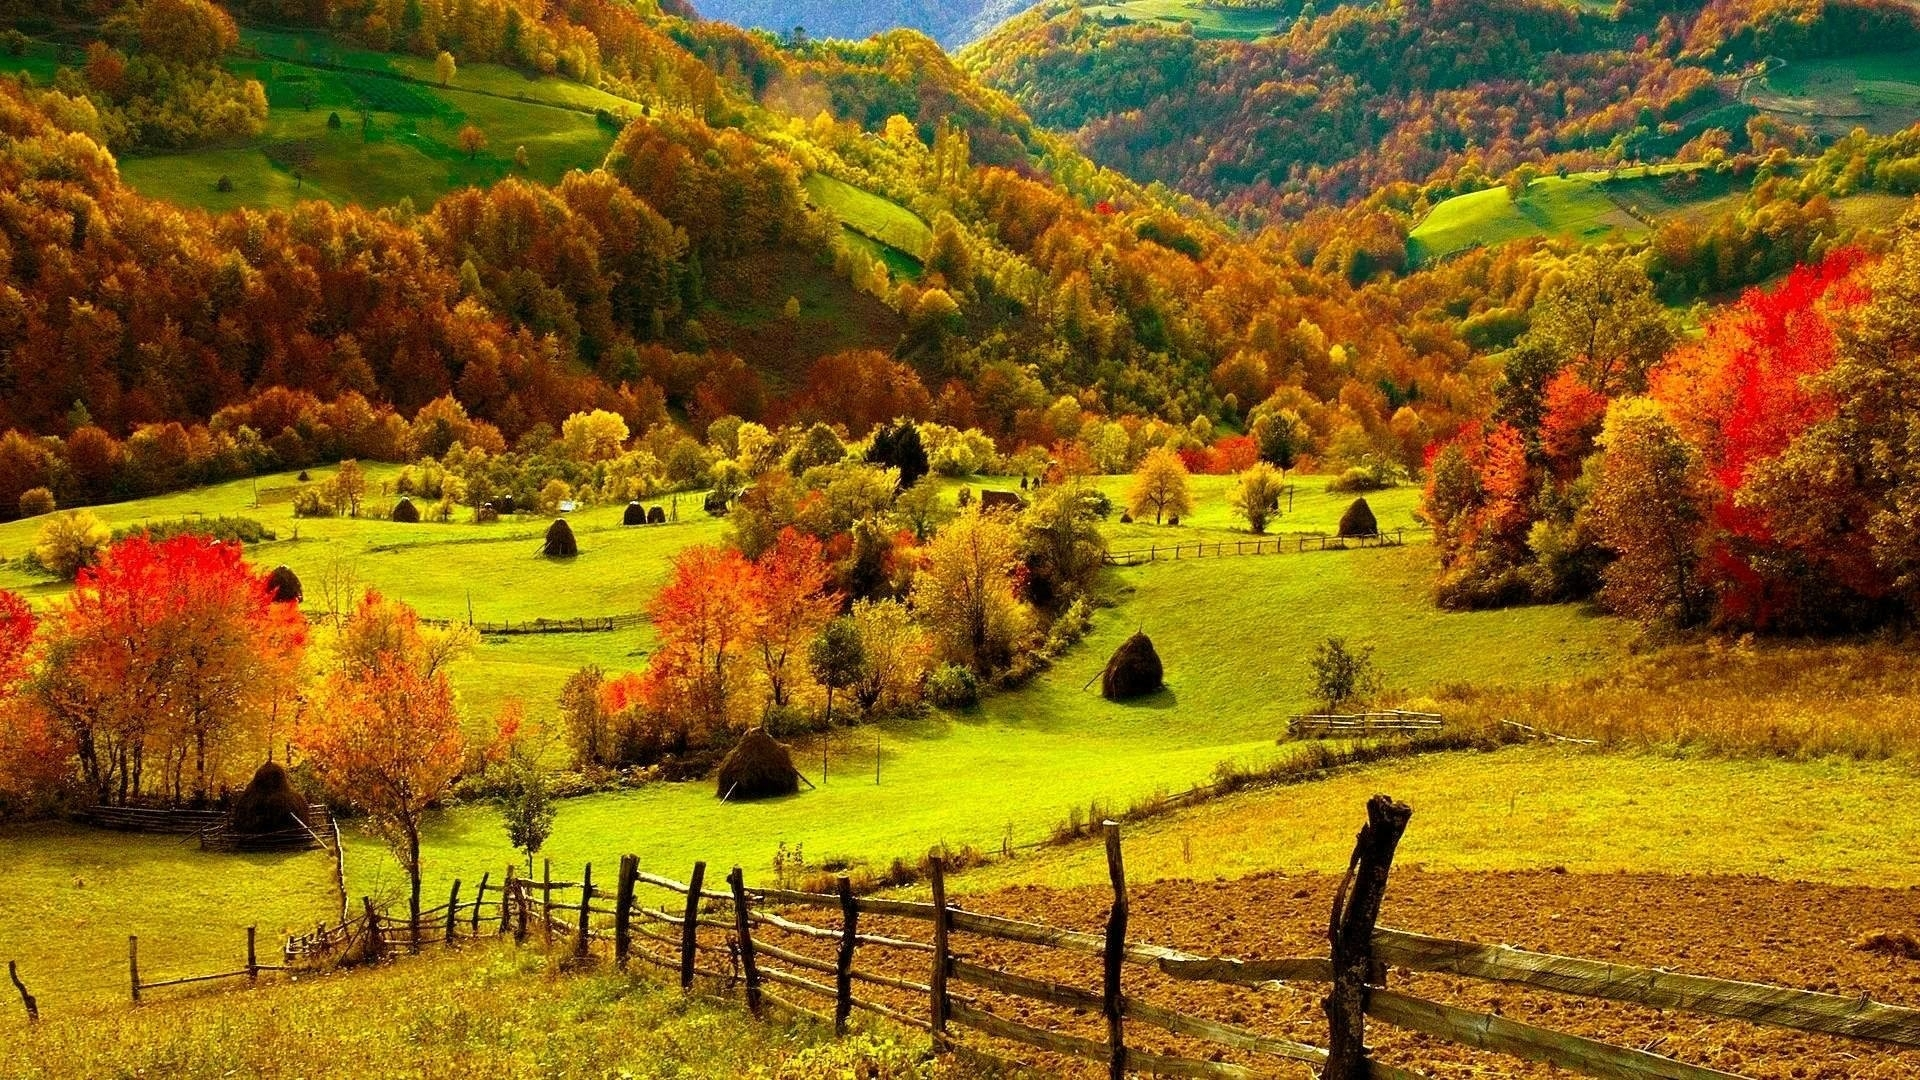 beautiful fall scenery wallpaper (49+ images)